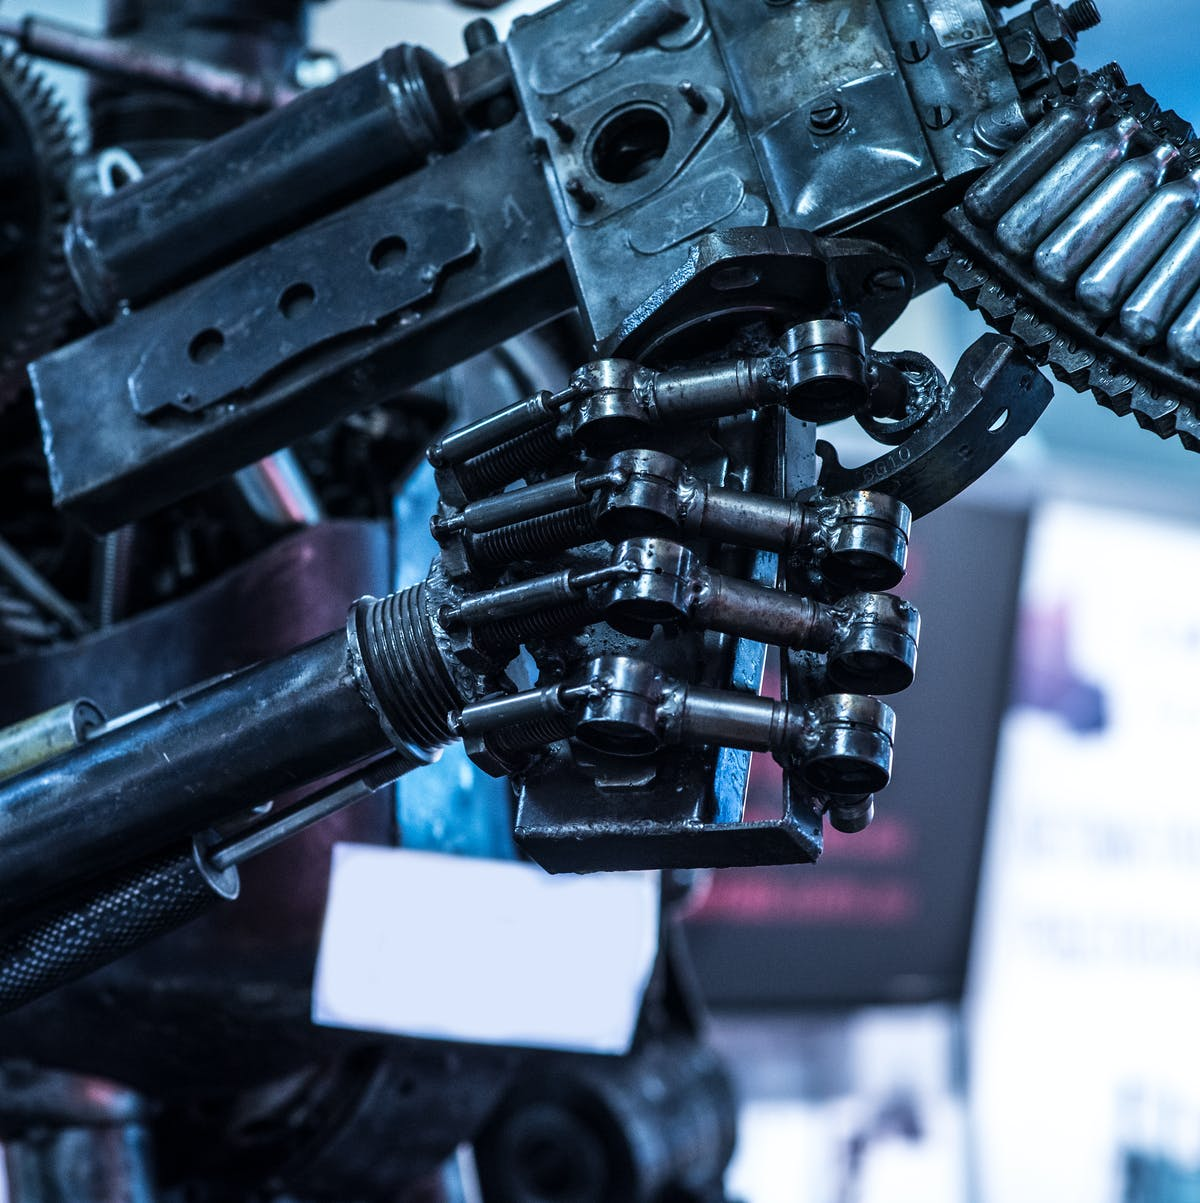 In the 2020, killer robots may roam the Earth